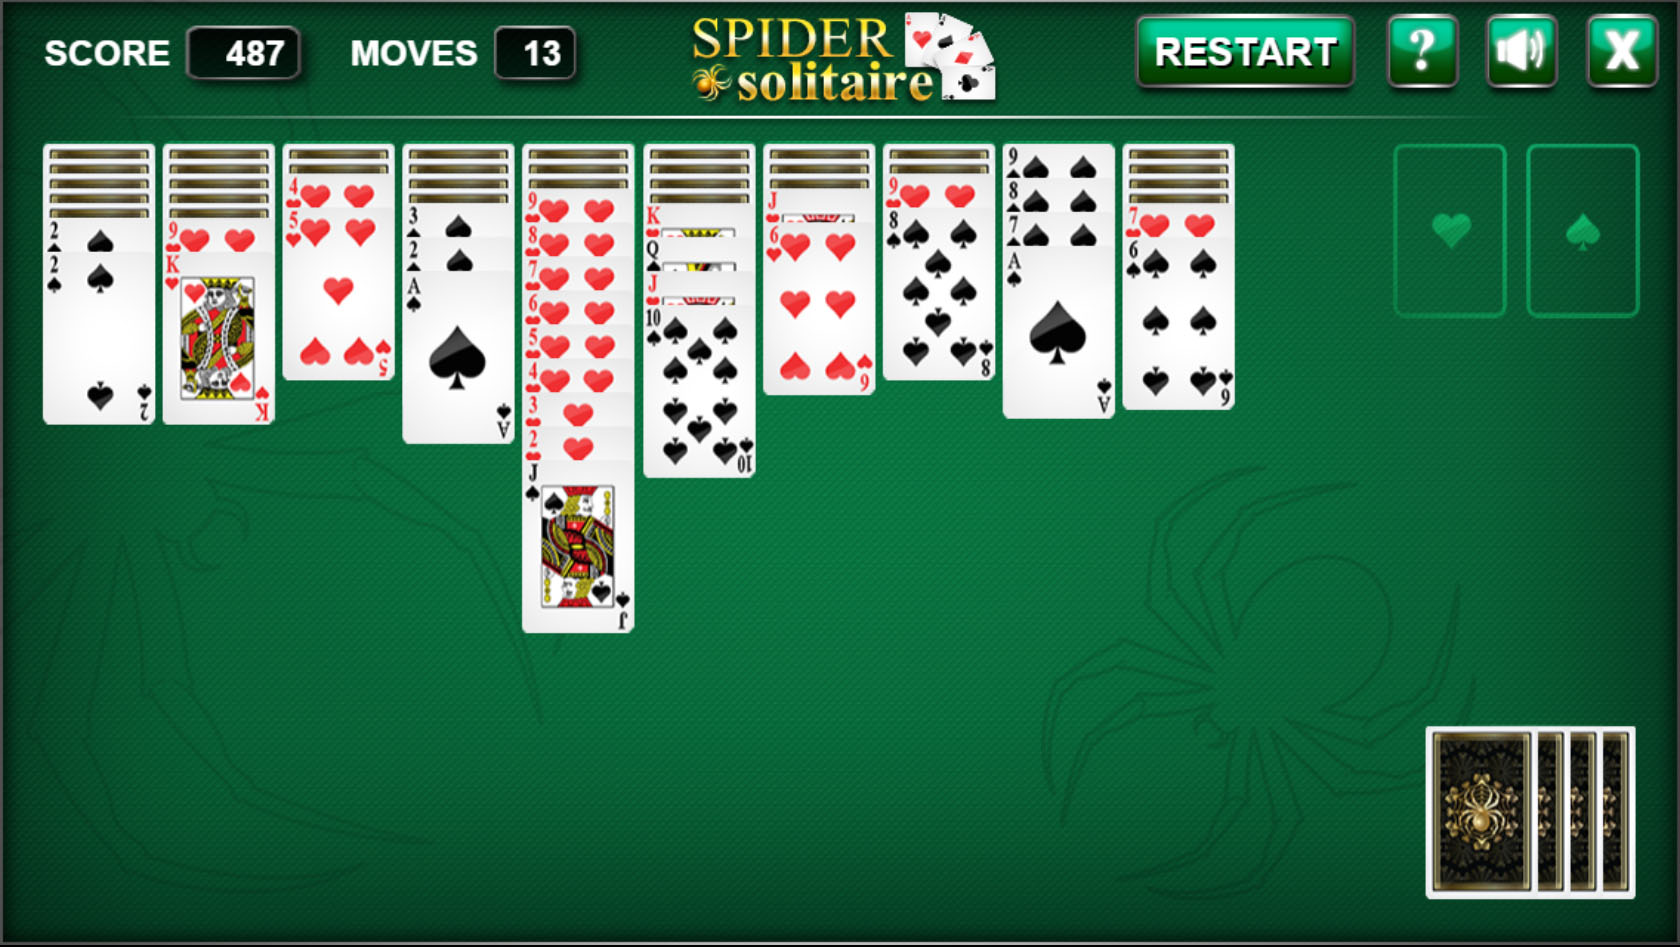 Spider Solitaire GroГџ